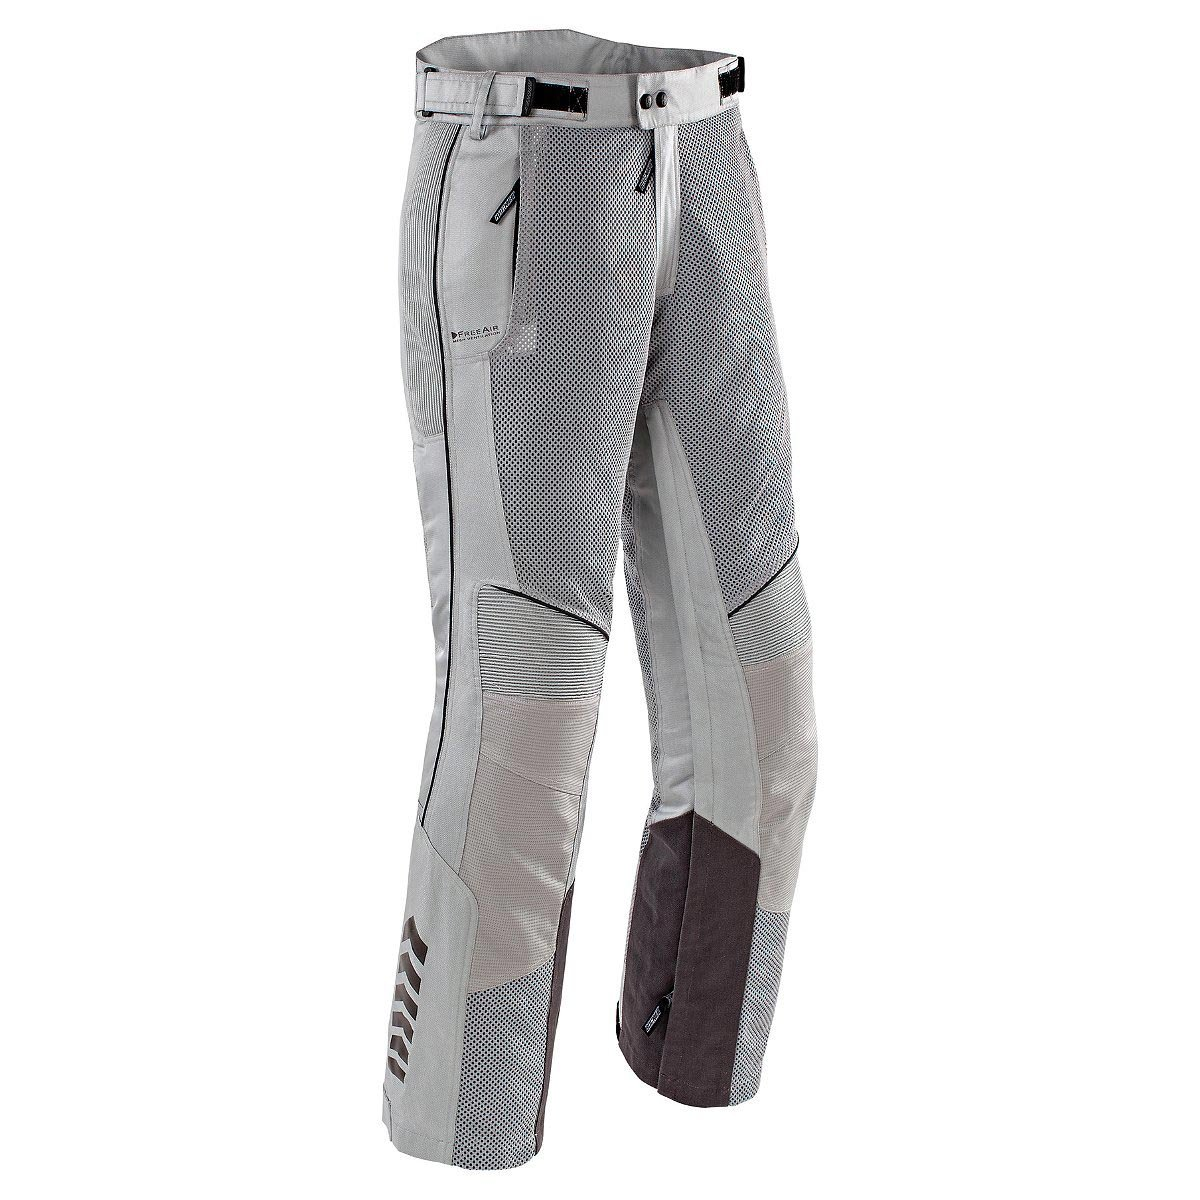 Joe Rocket Phoenix Ion Men's Mesh Motorcycle Pants (Silver, XX-Large)